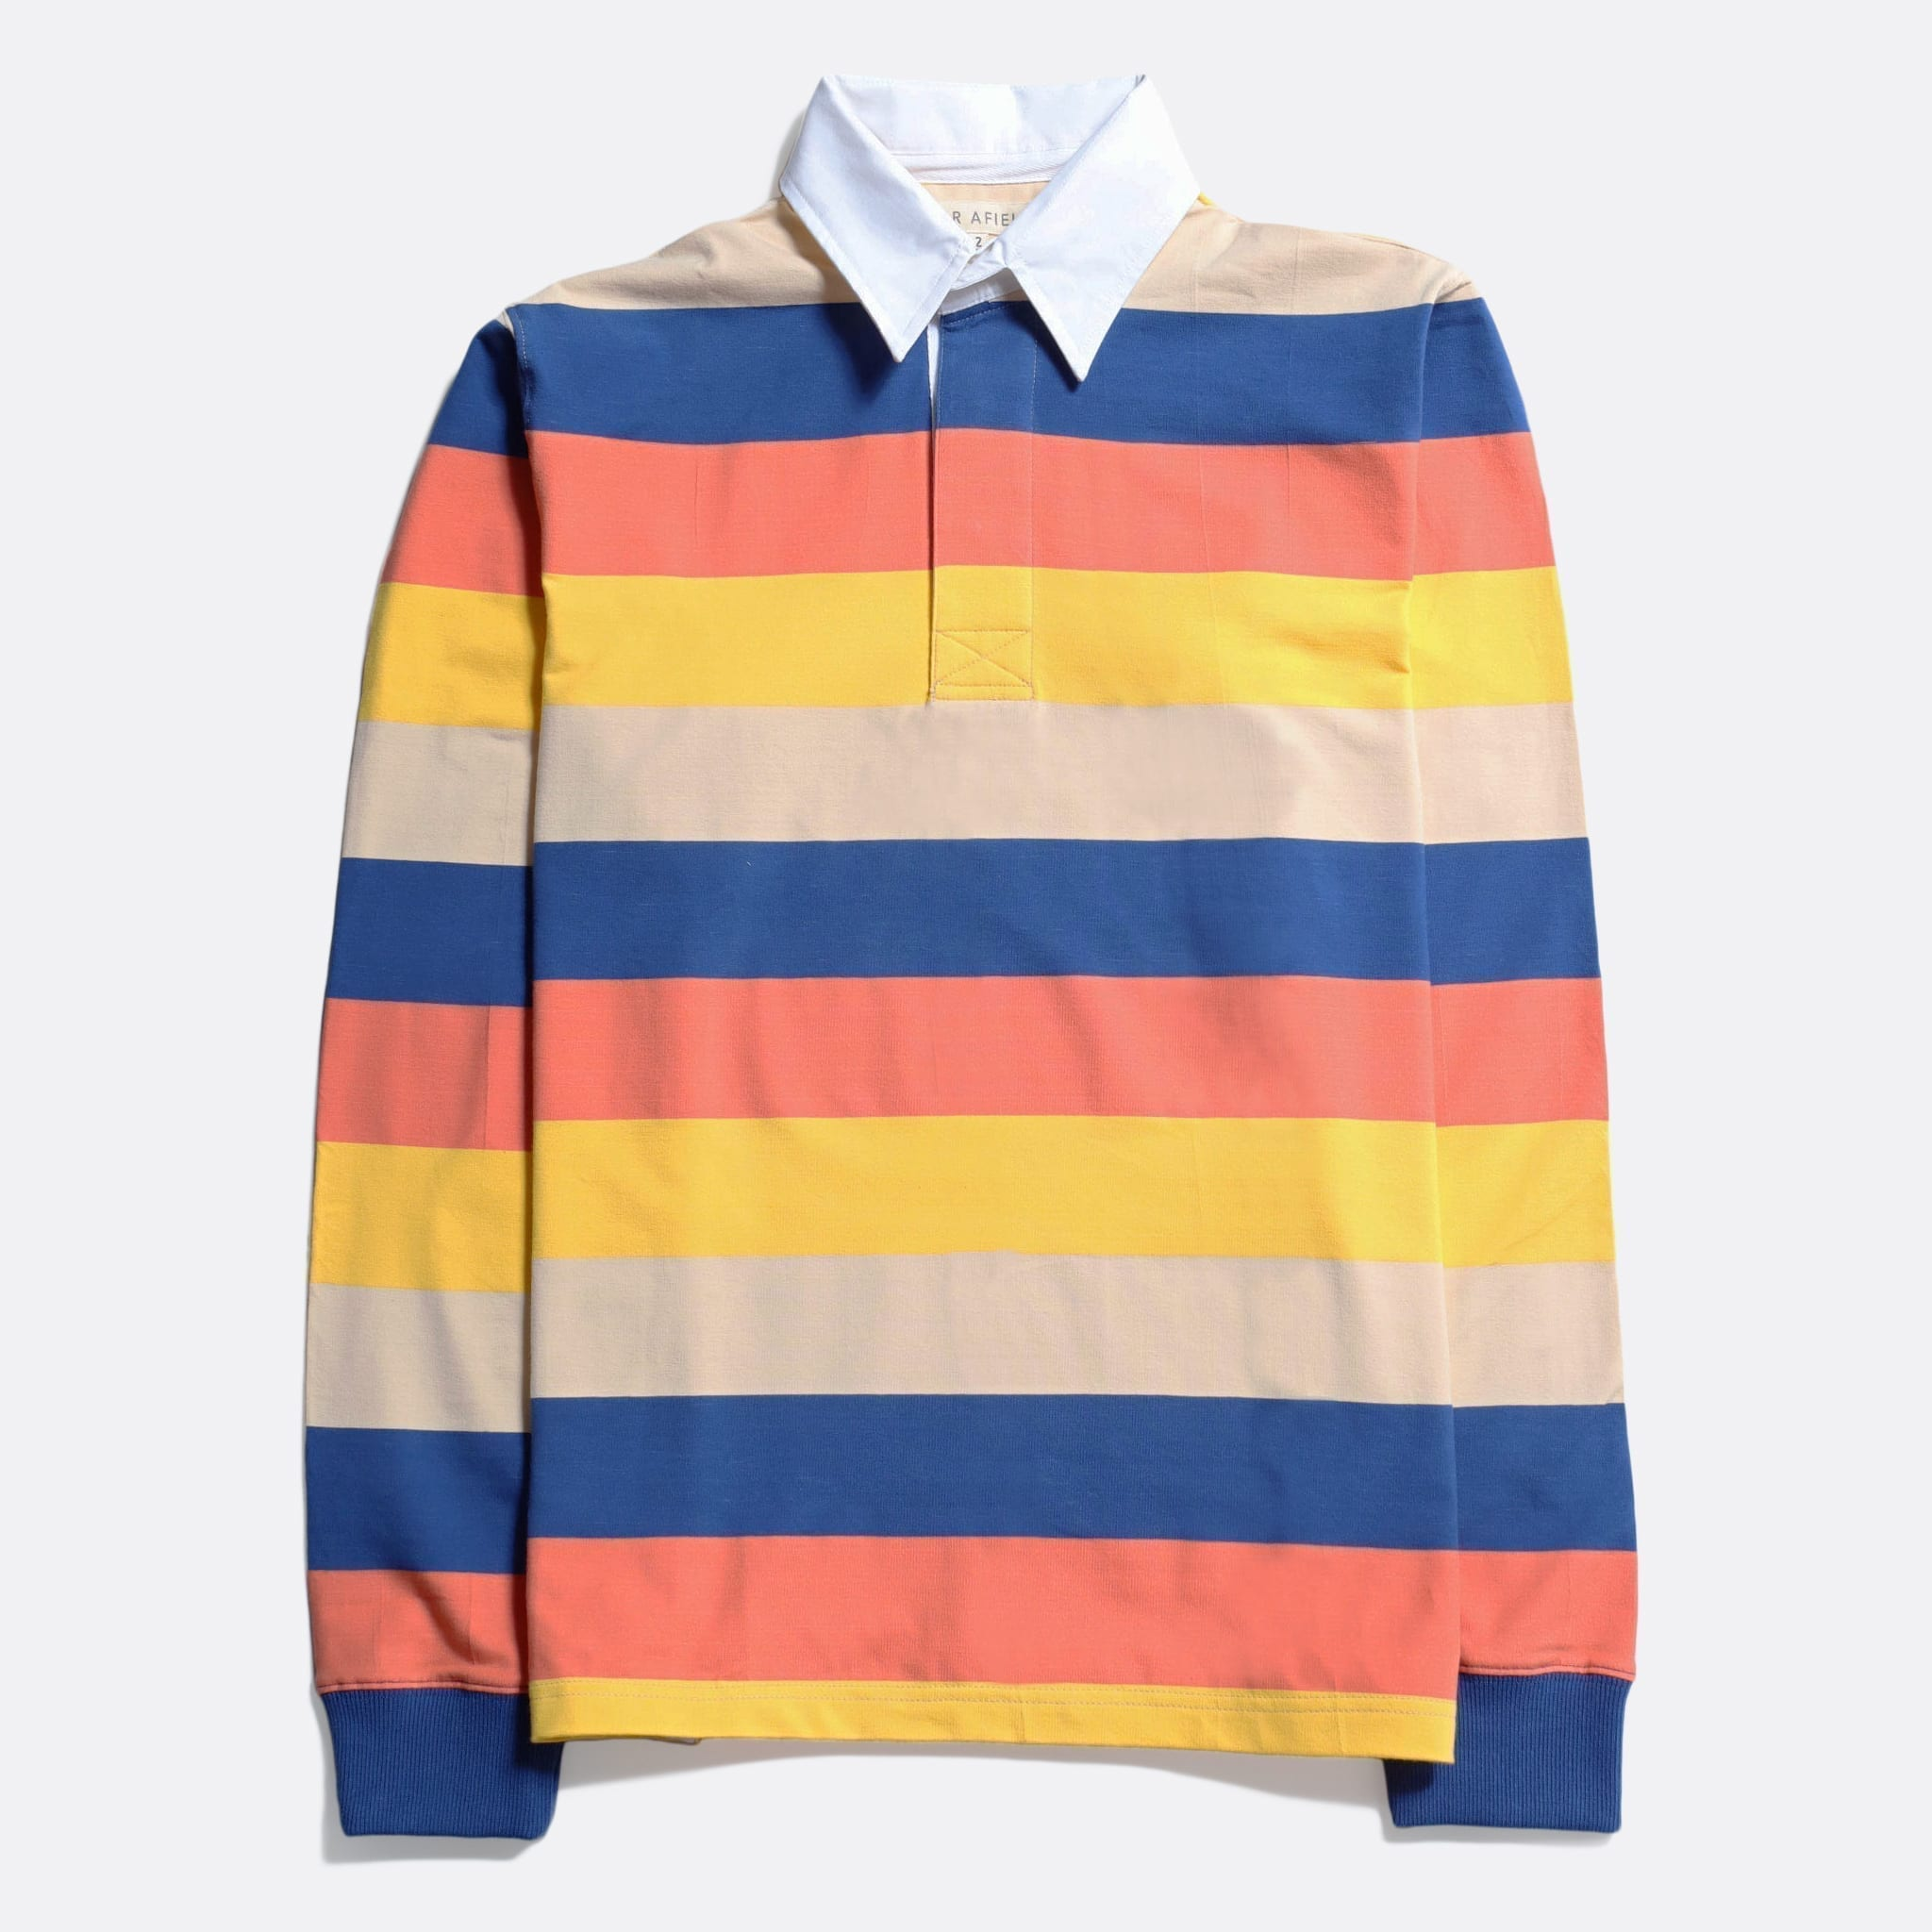 Far Afield Benito Rugby Shirt a Broad Stripe Multi Colour BCI Cotton FabricHeritage Inspired